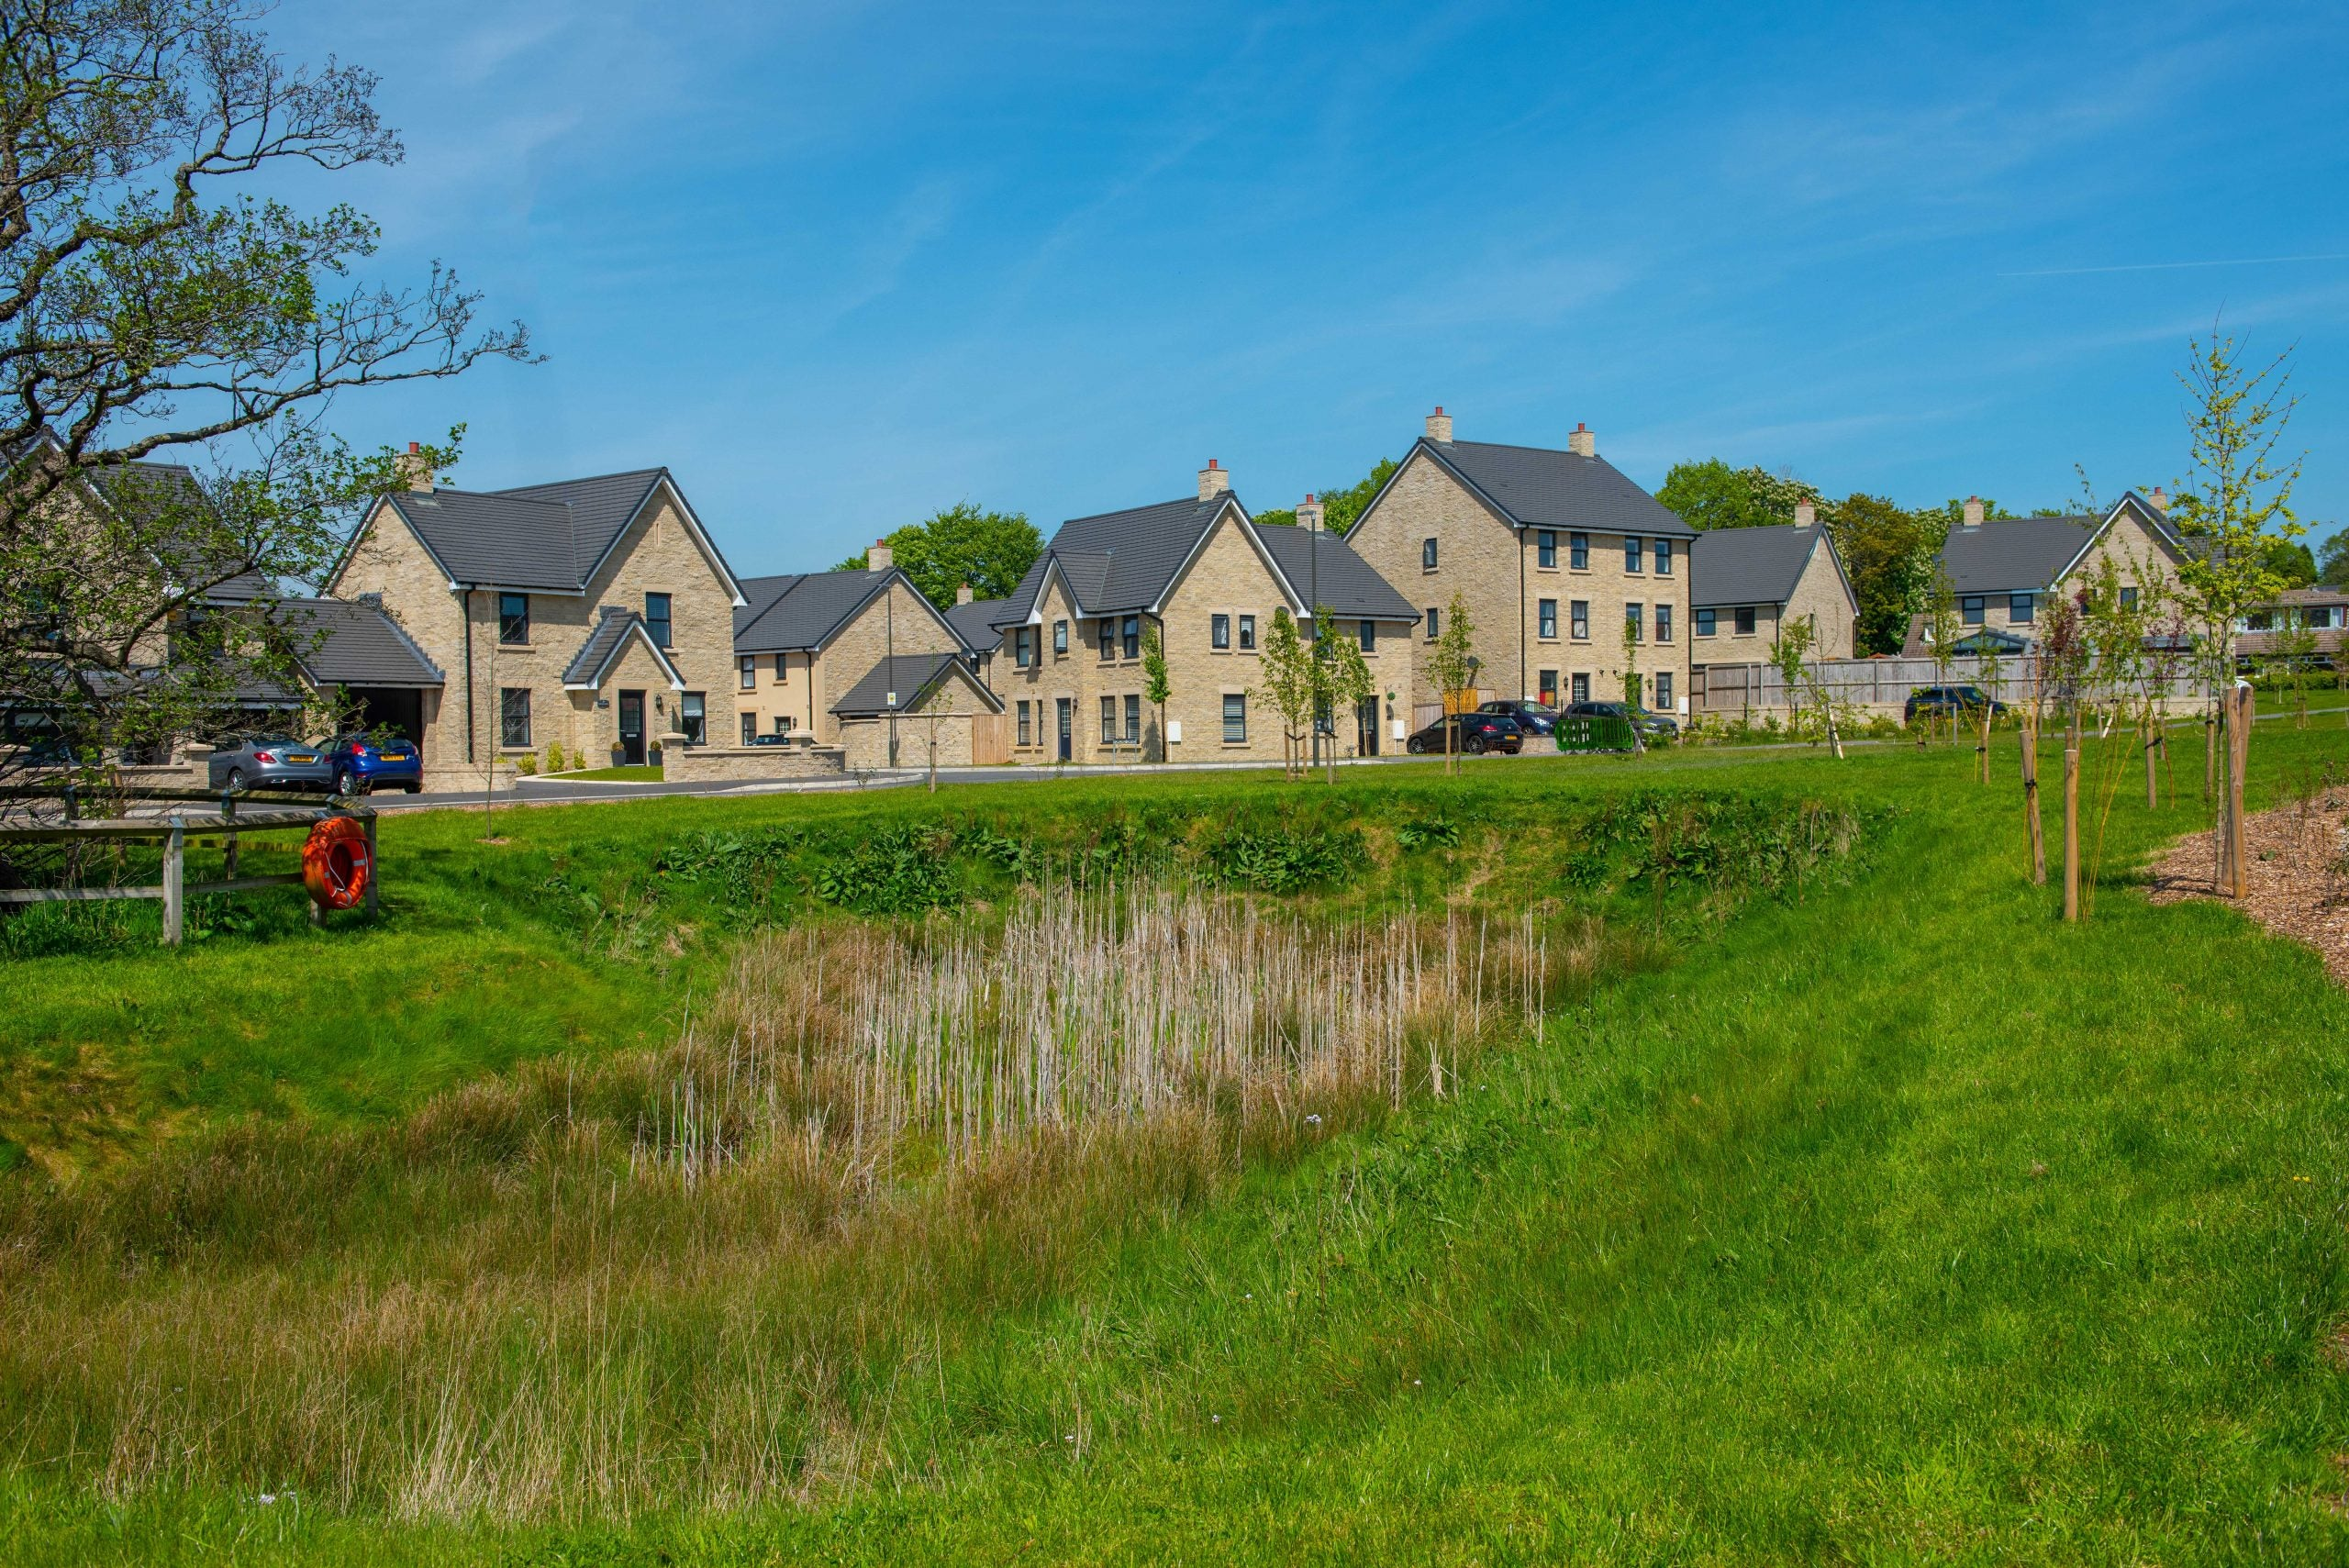 Building sustainability into the UK's housing stock